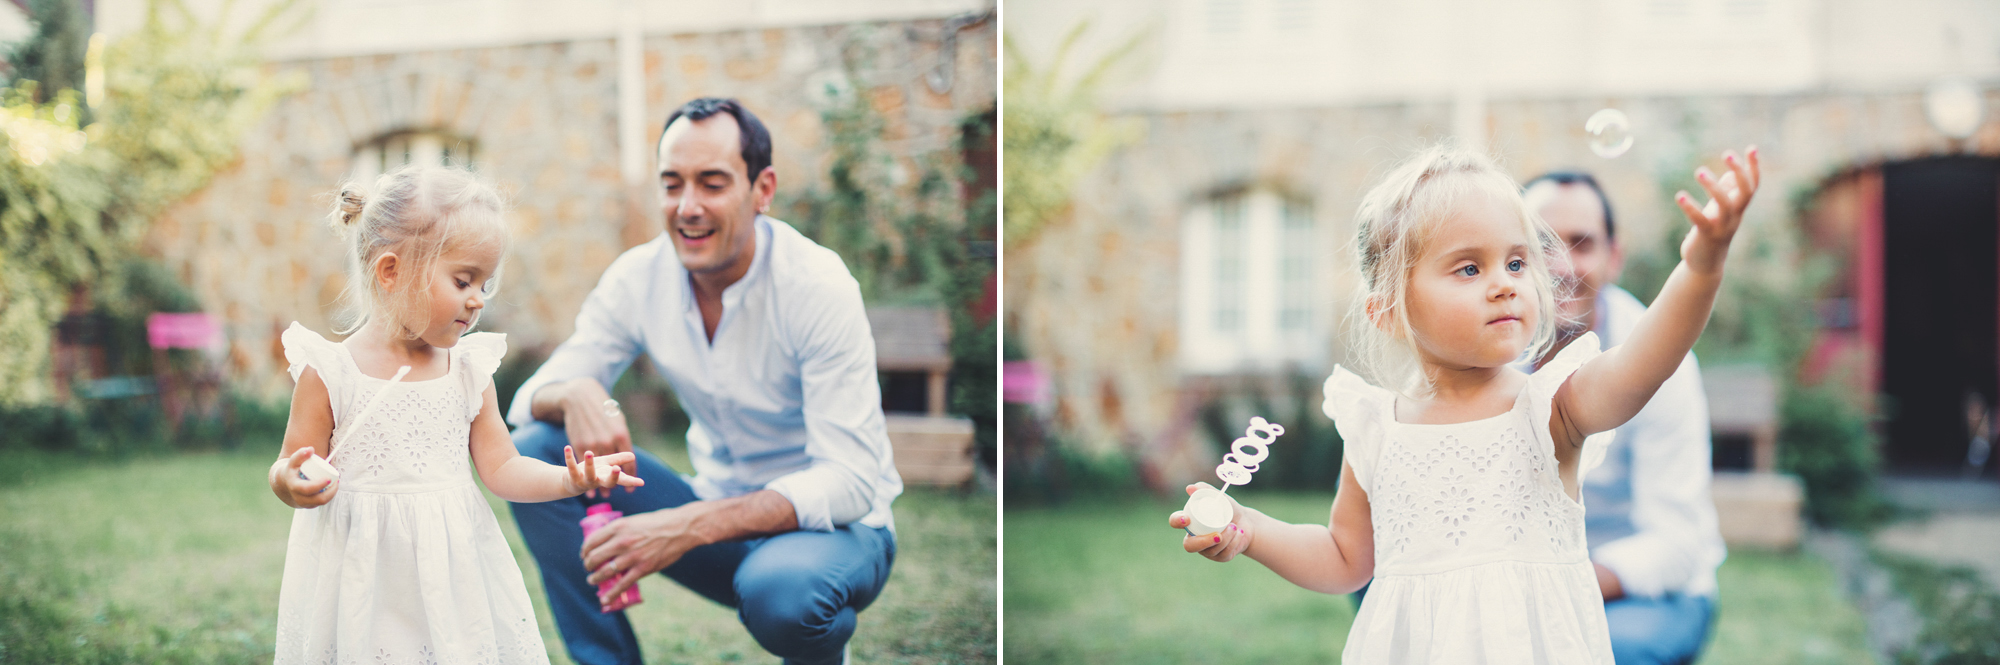 Family photographer Napa Valley @Anne-Claire Brun 0013